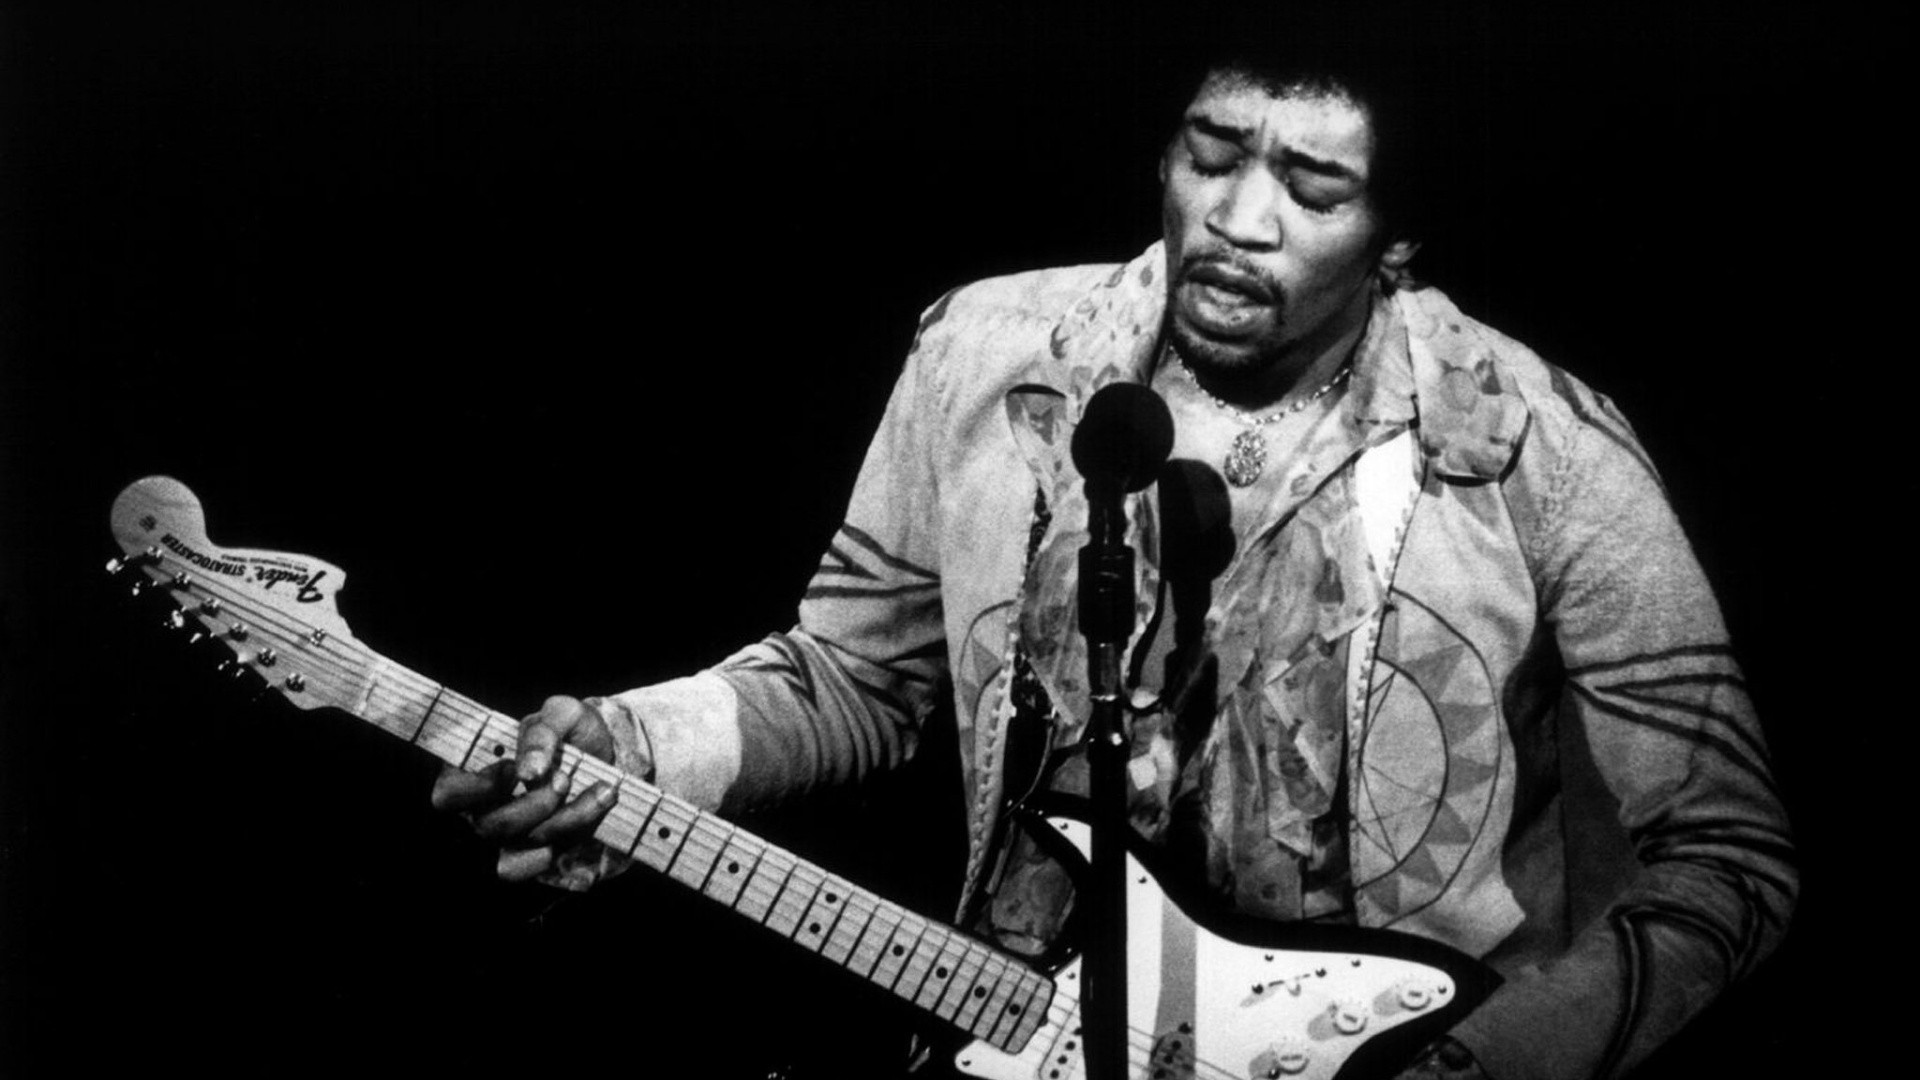 Jimi Hendrix download wallpapers